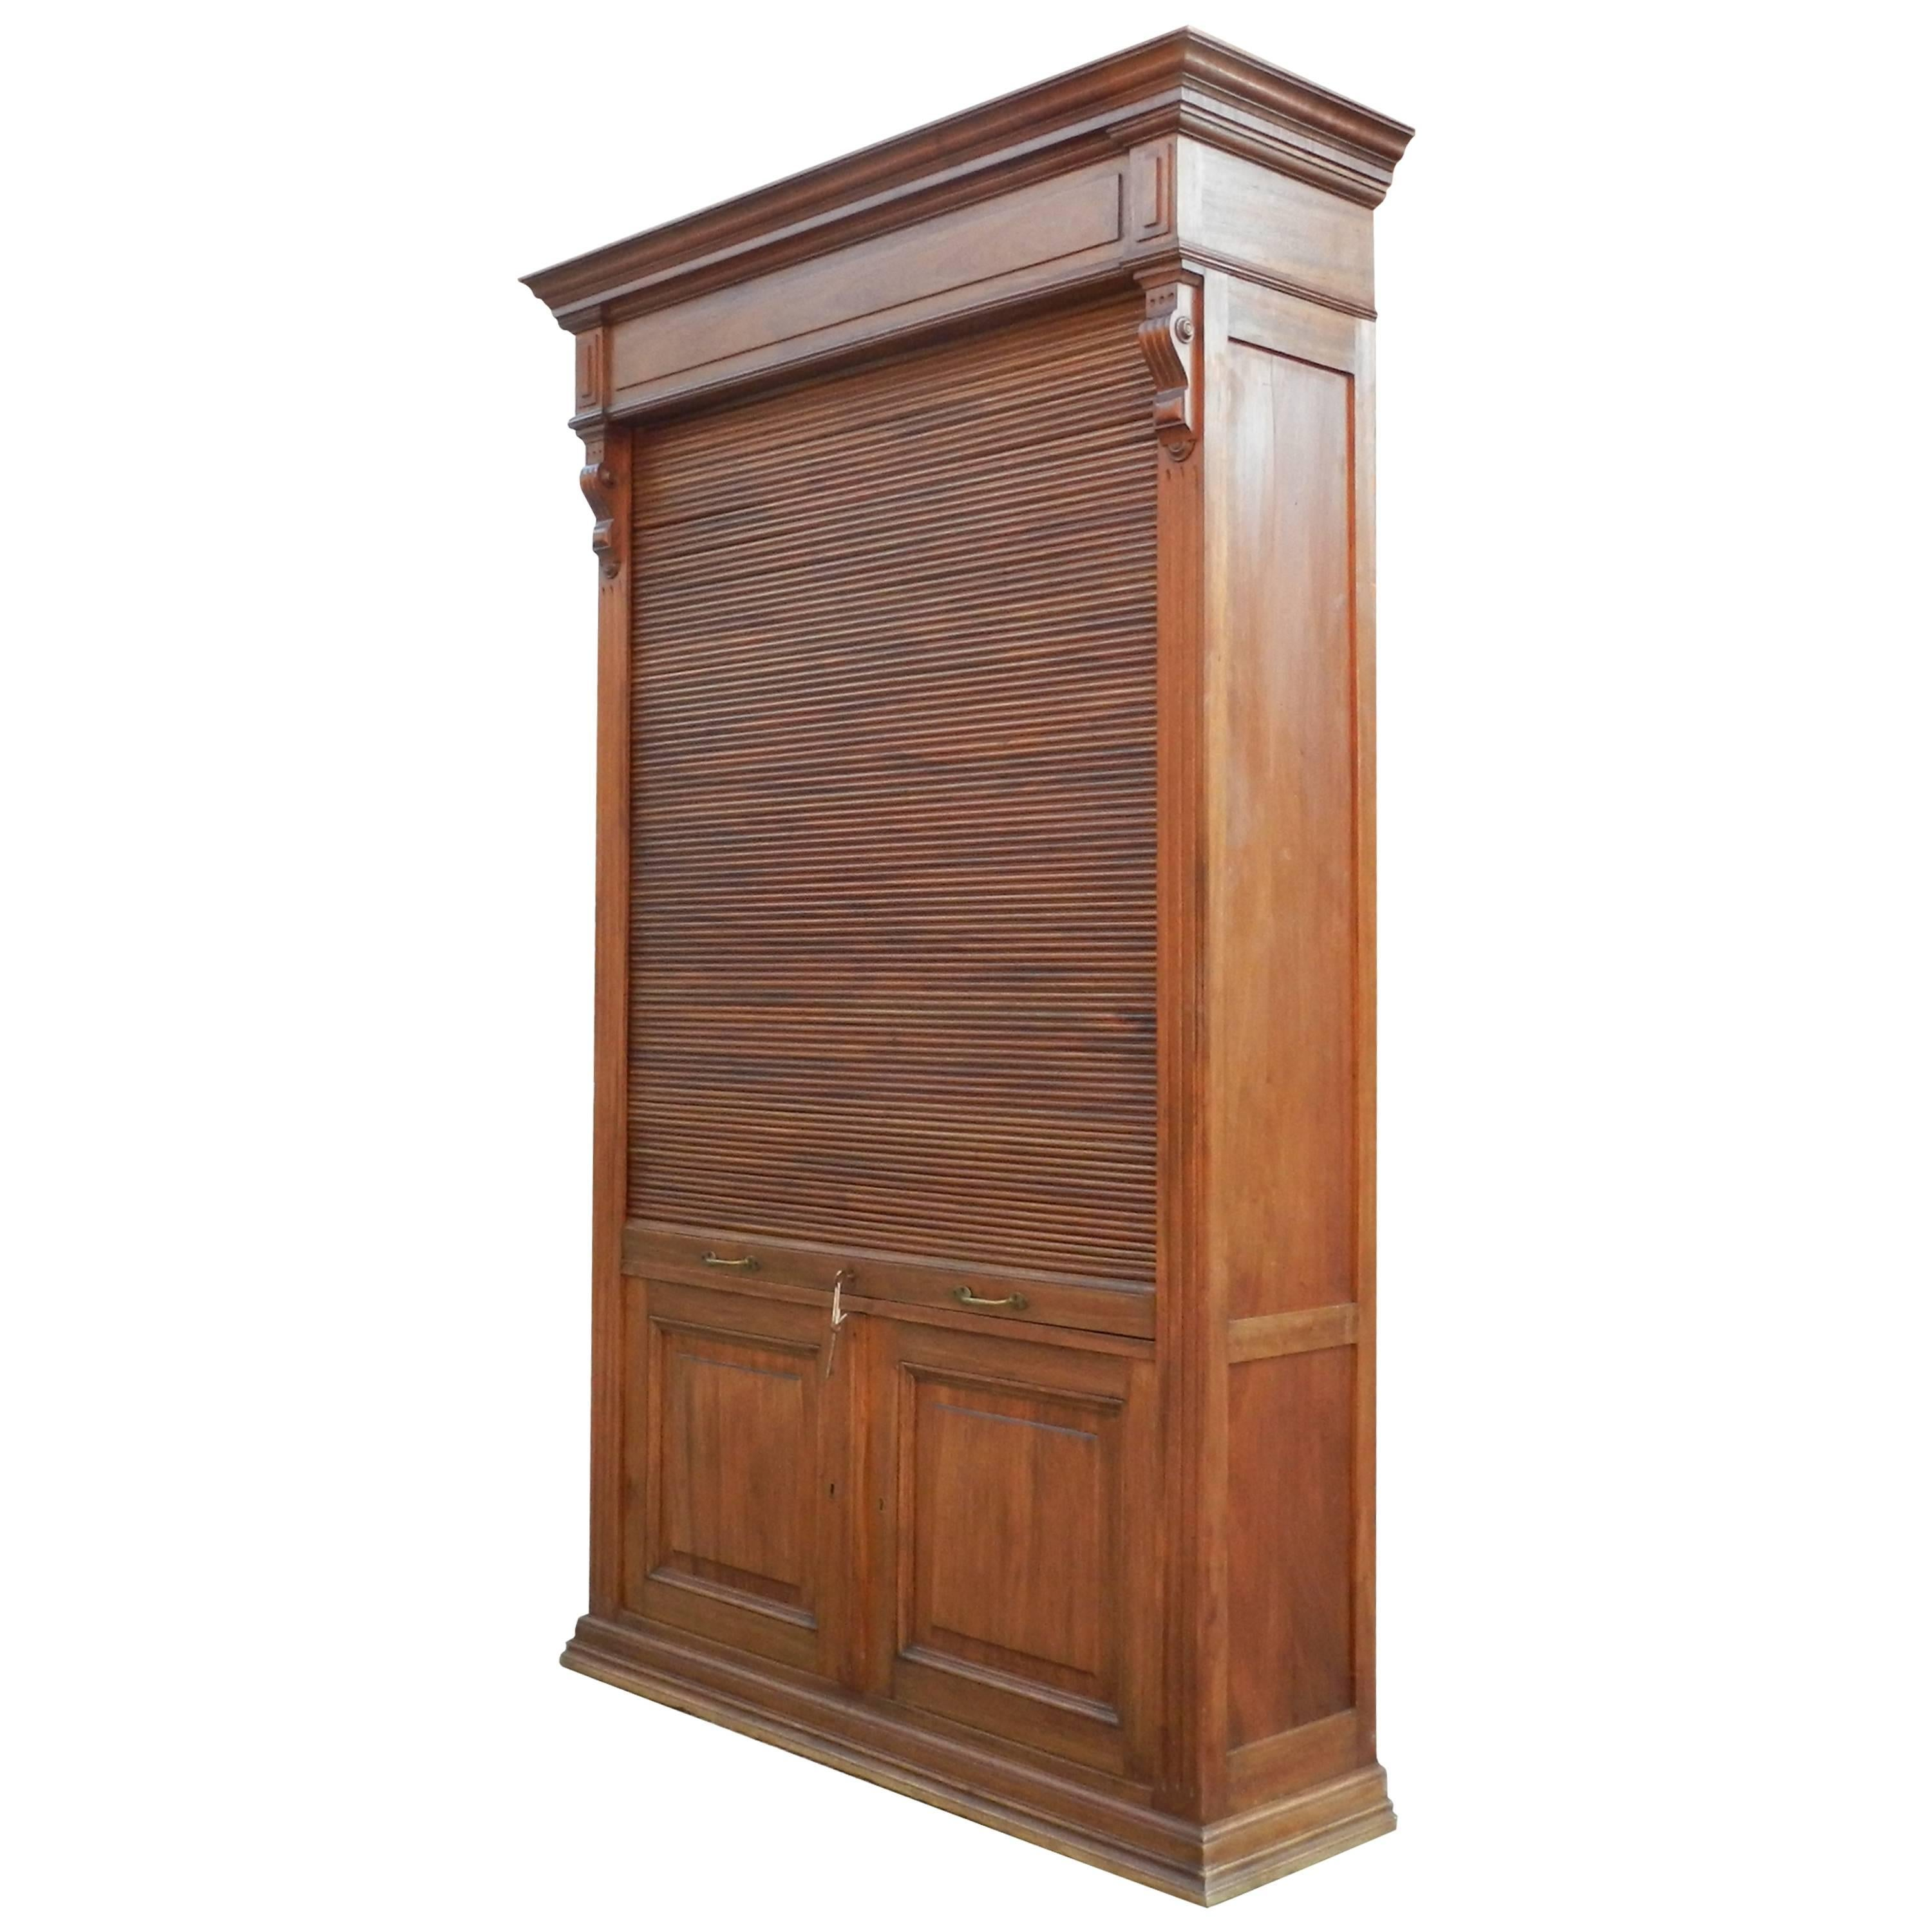 Louvered-Door Cabinet in Mahogany and Solid Oak, circa 1900